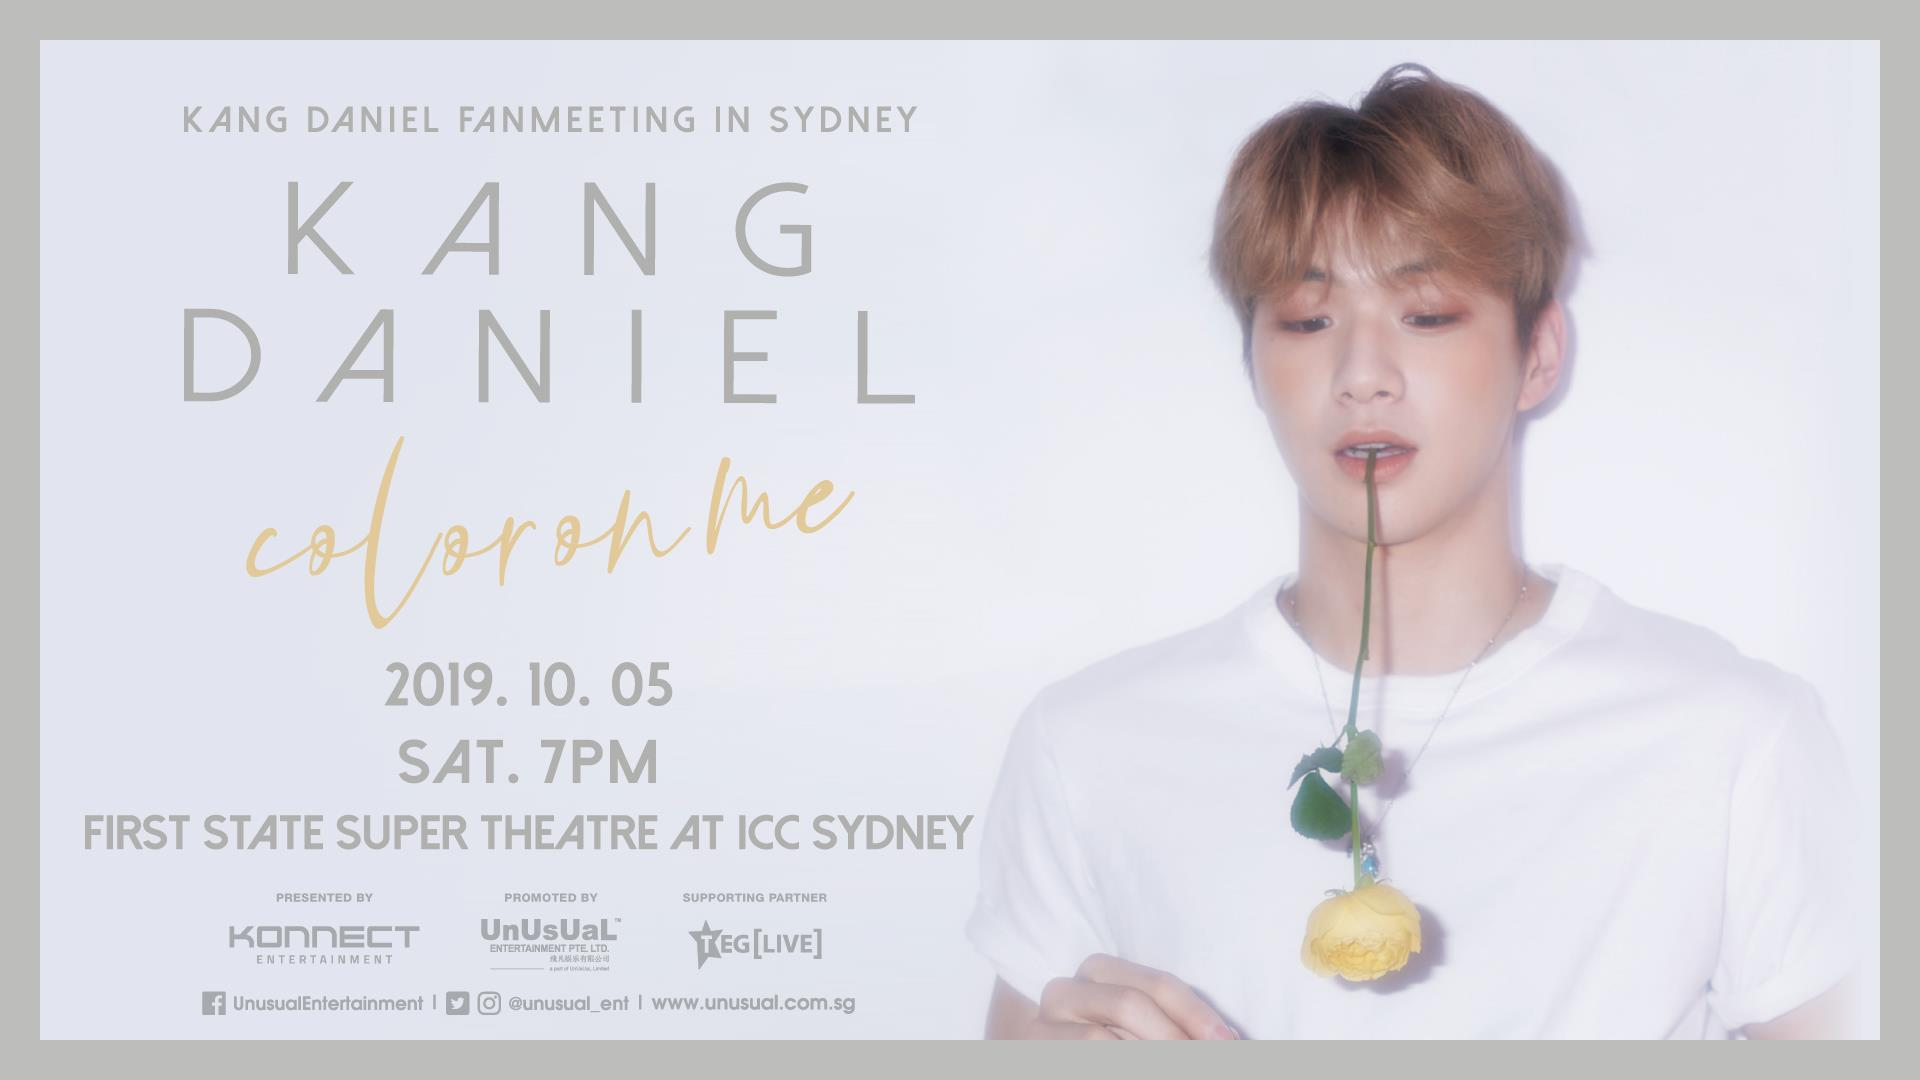 Kang Daniel's 'Color On Me' Fan Meeting Cancelled